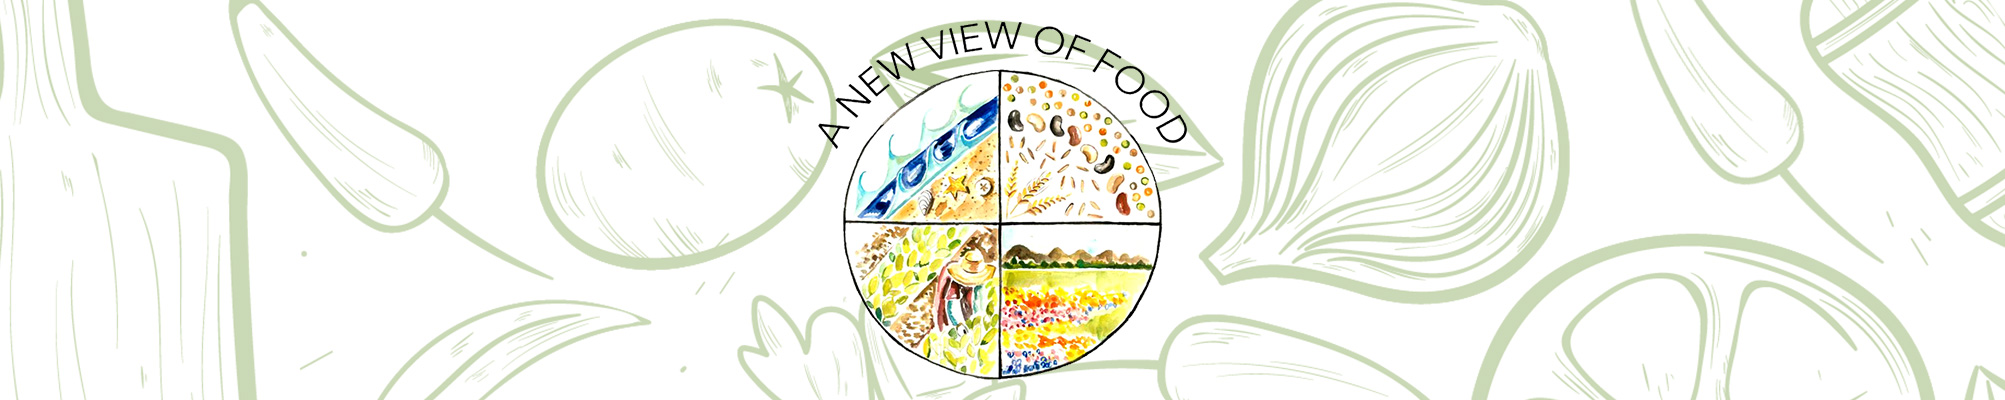 A New View of Food logo